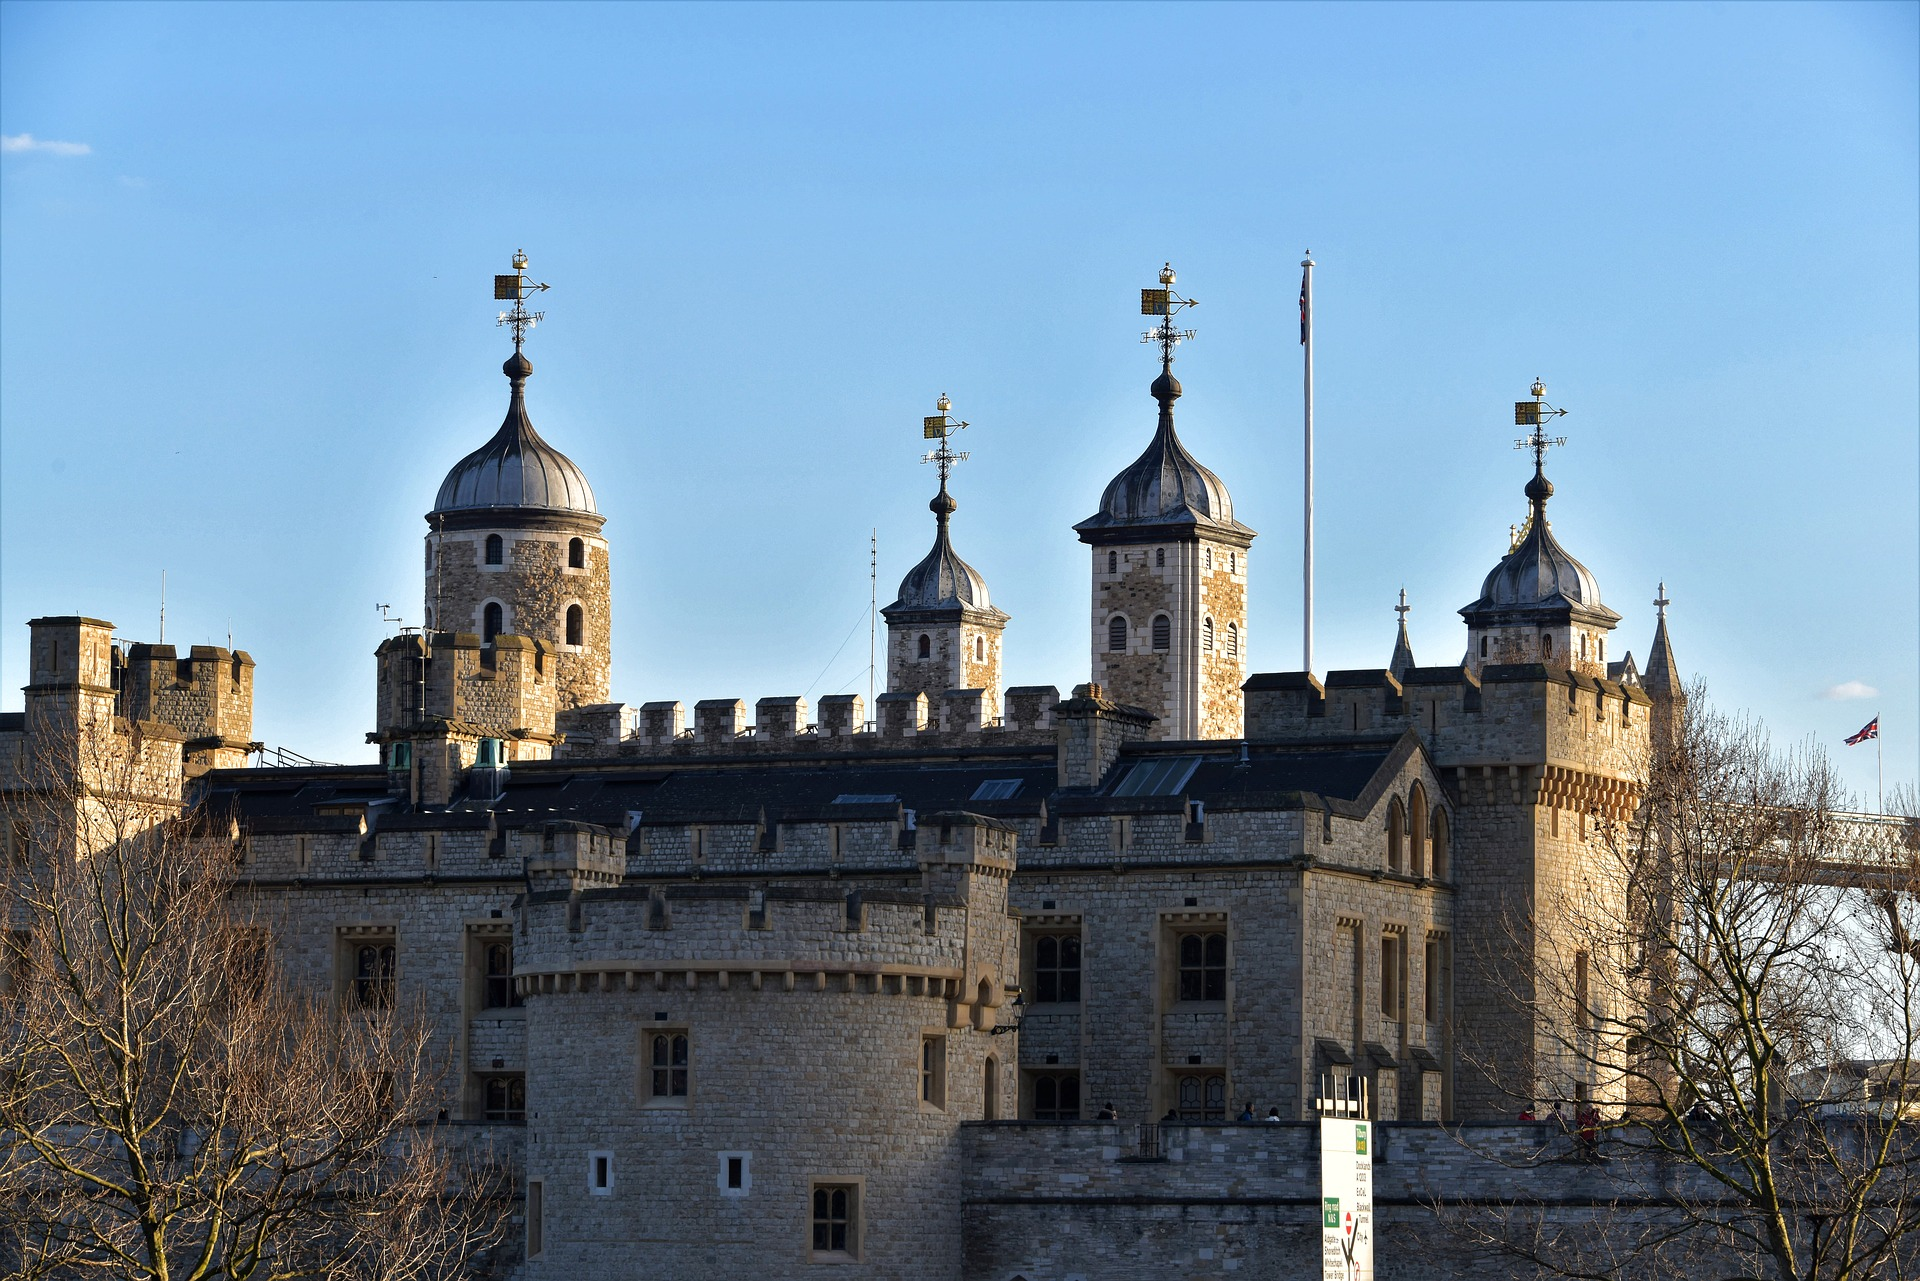 tower-of-london.jpg?1543335944